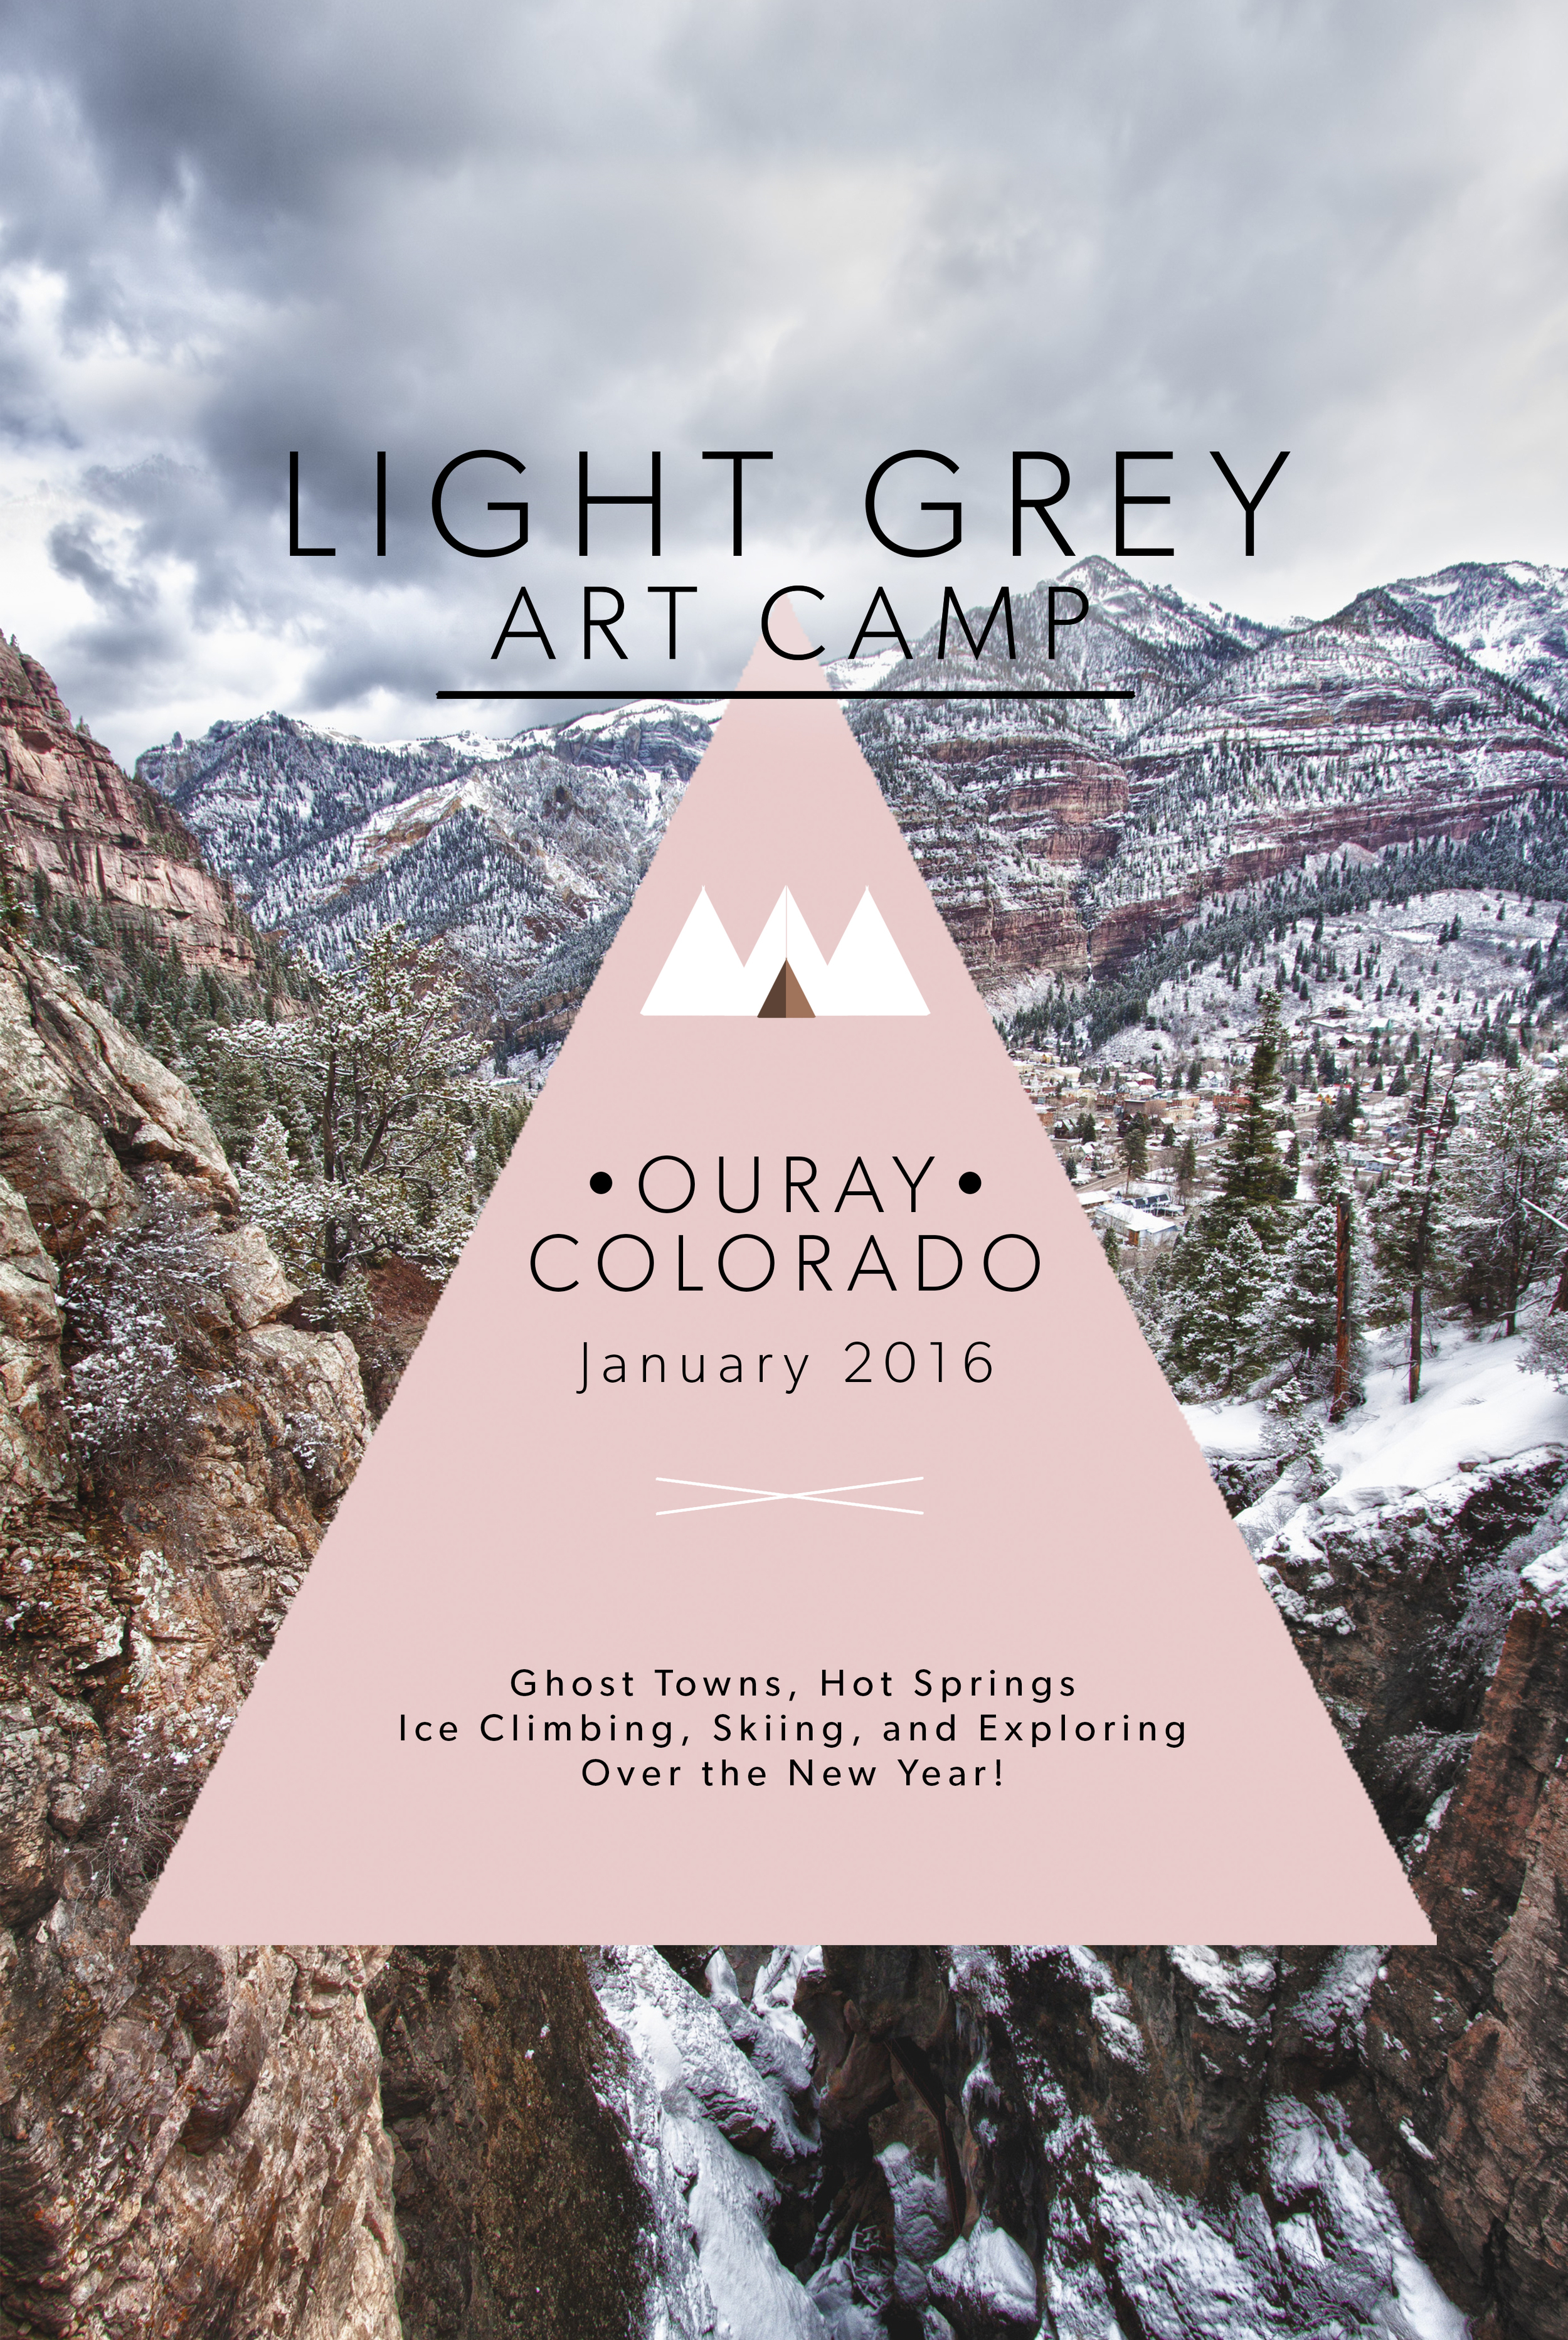 LightGreyArtCamp_BryceCanyonZion_working.jpg